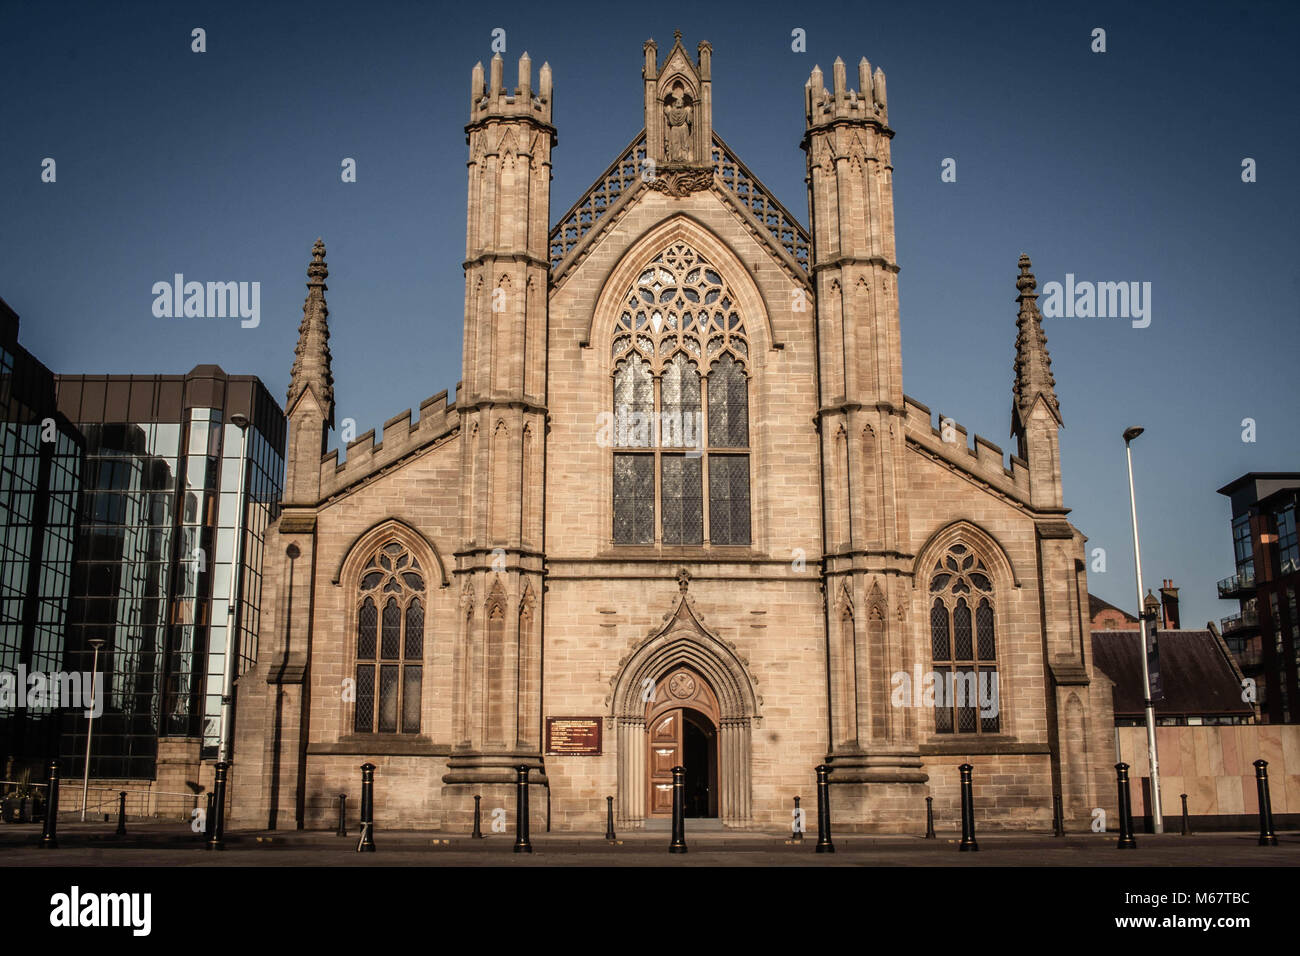 St Andrews Catholic Cathedral, Clyde Street, Glasgow, Scotland. Stock Photo